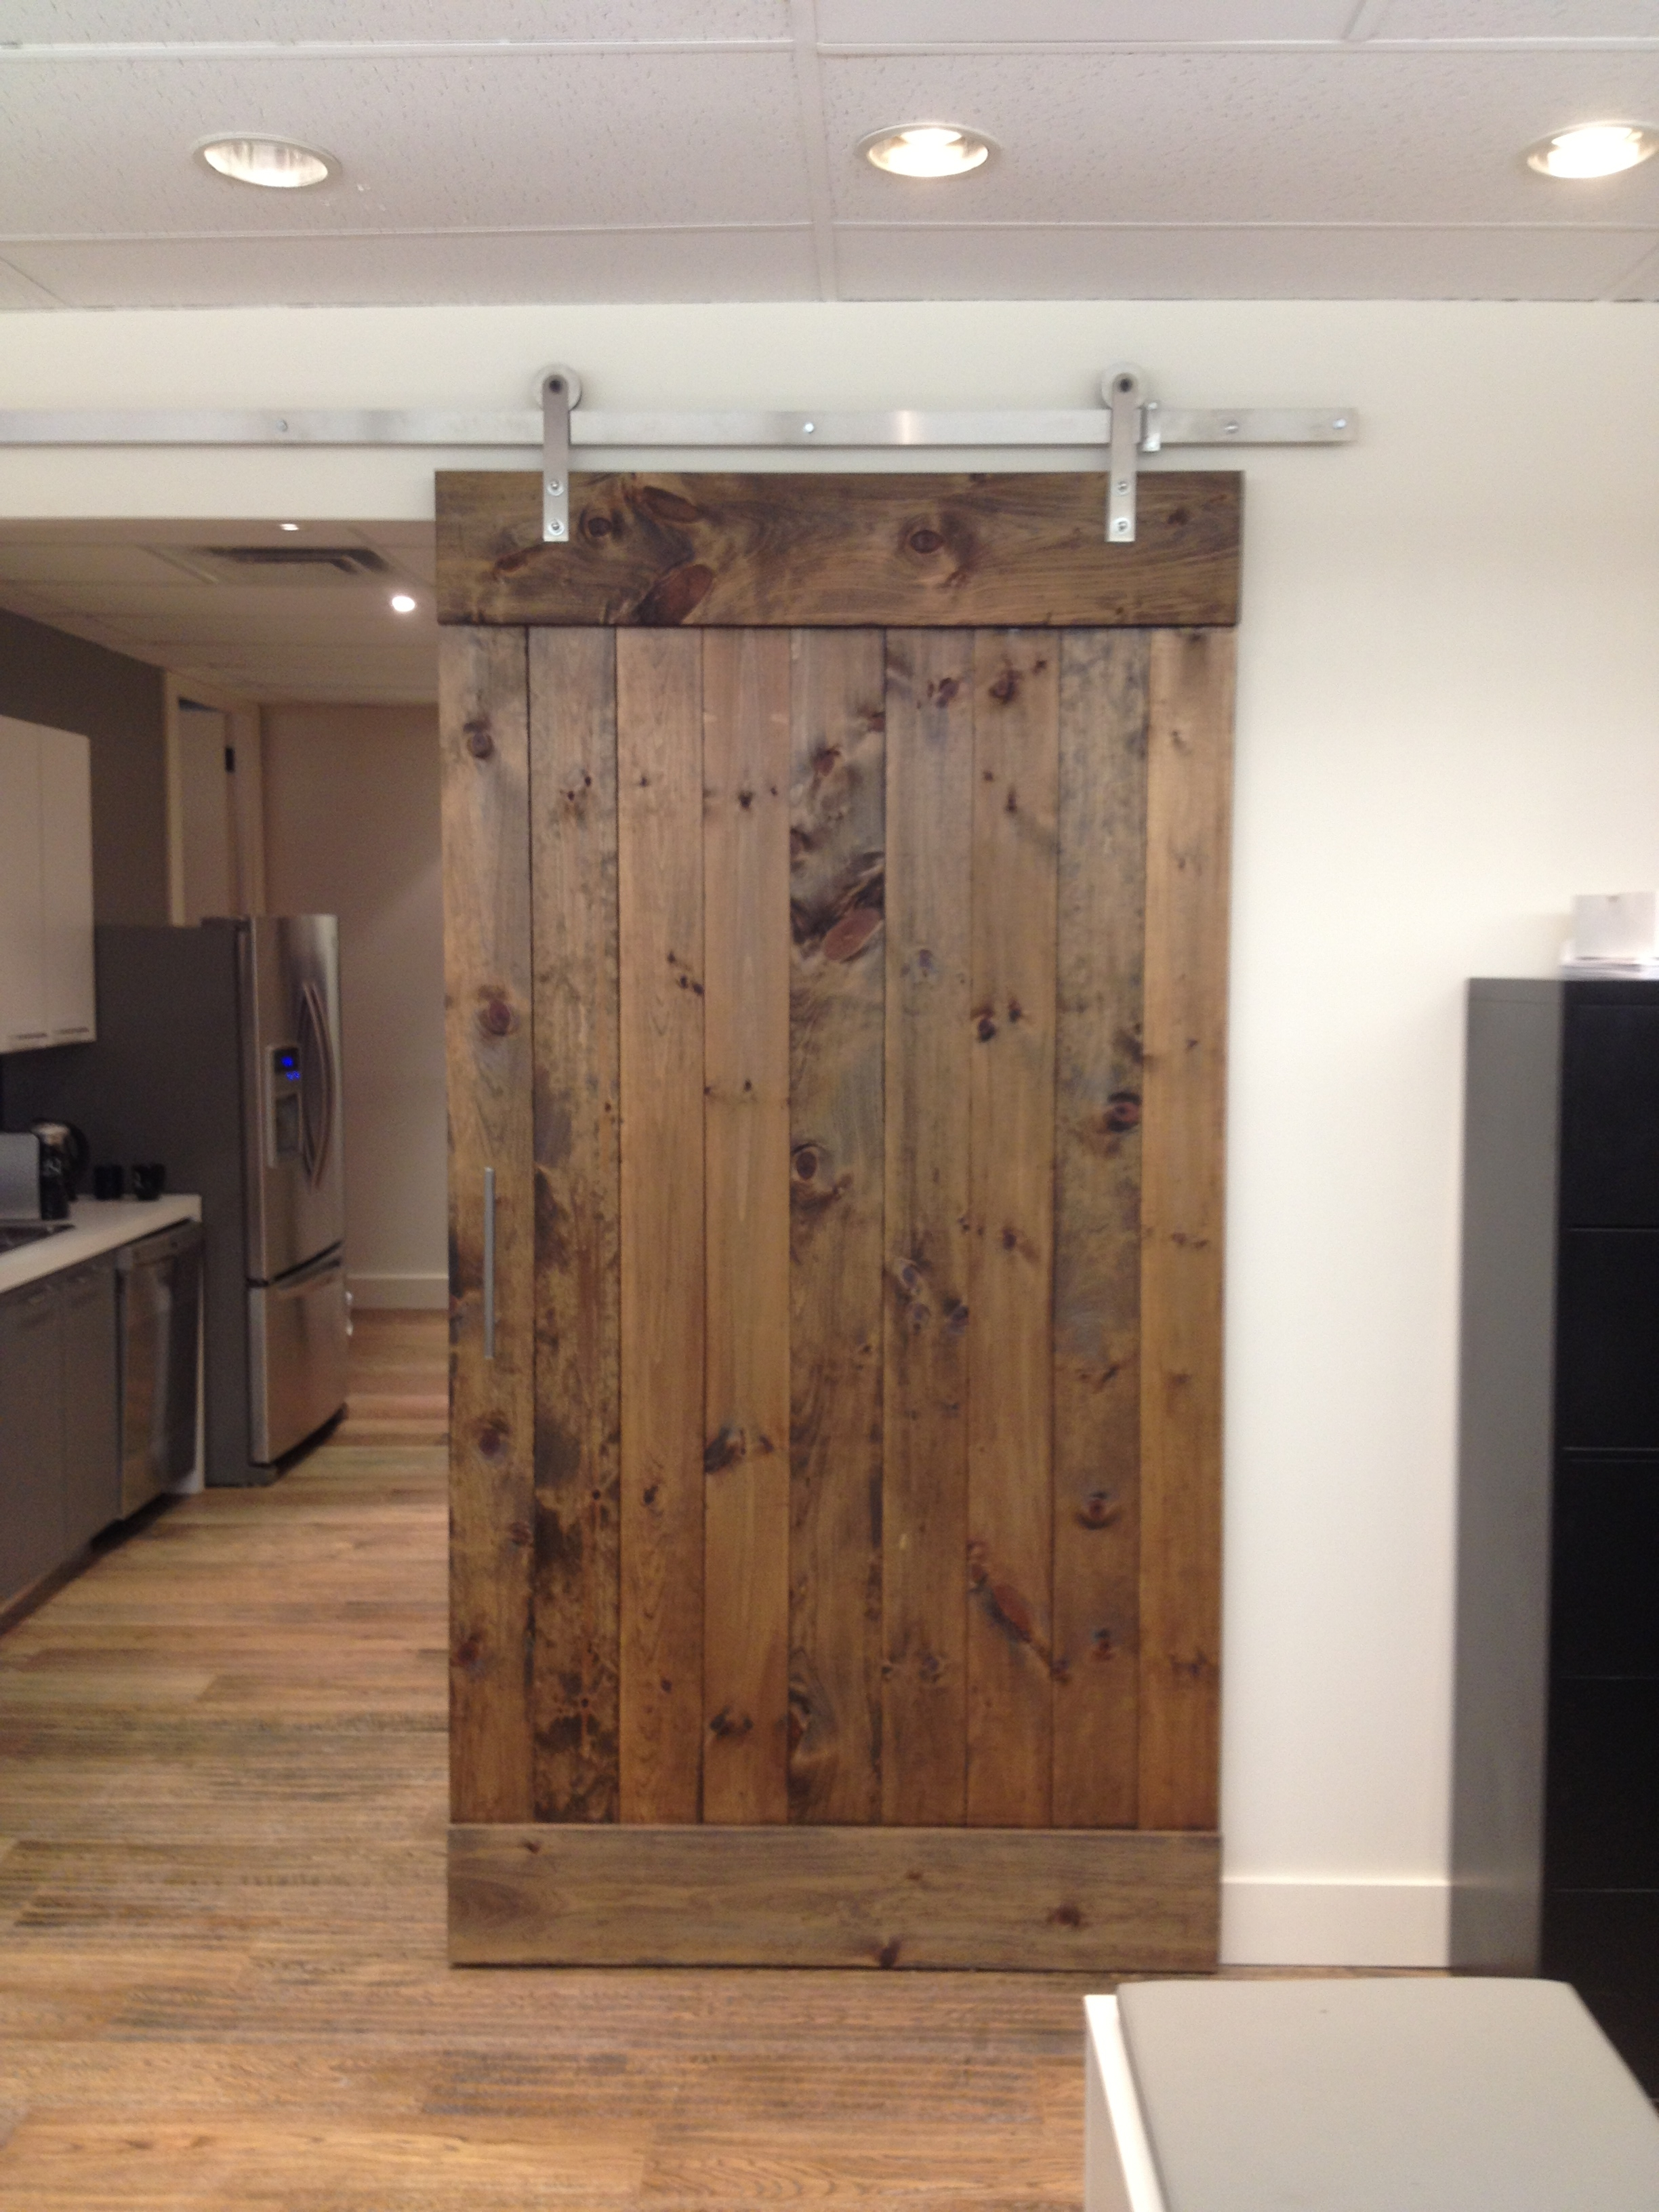 Sliding Barn Doors For House2448 X 3264